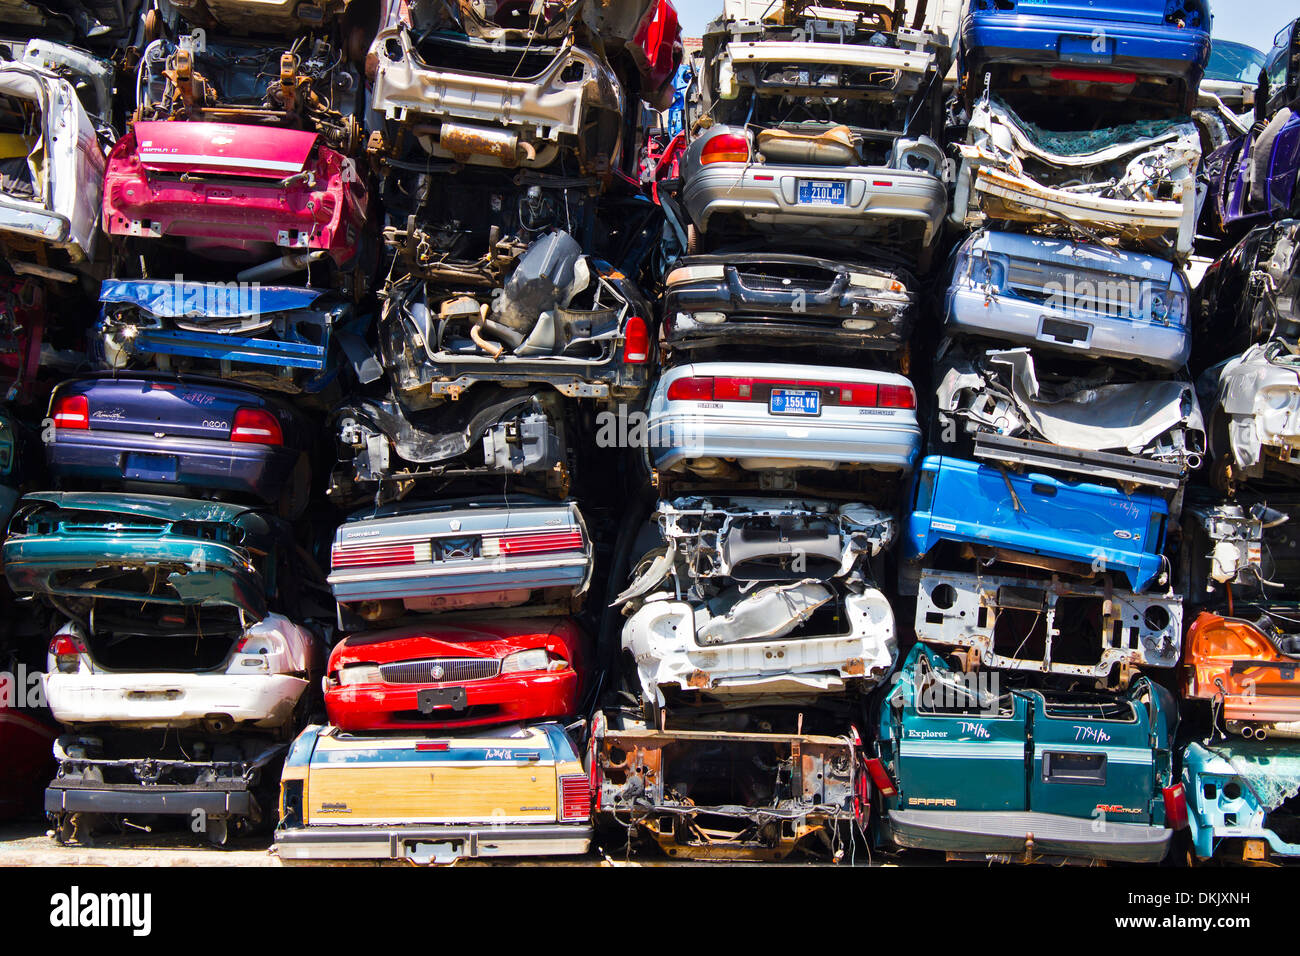 Car Battery Recycling >> A Pile of Stacked Junk Cars - Discarded Junk Cars Piled Up After Stock Photo: 63725693 - Alamy